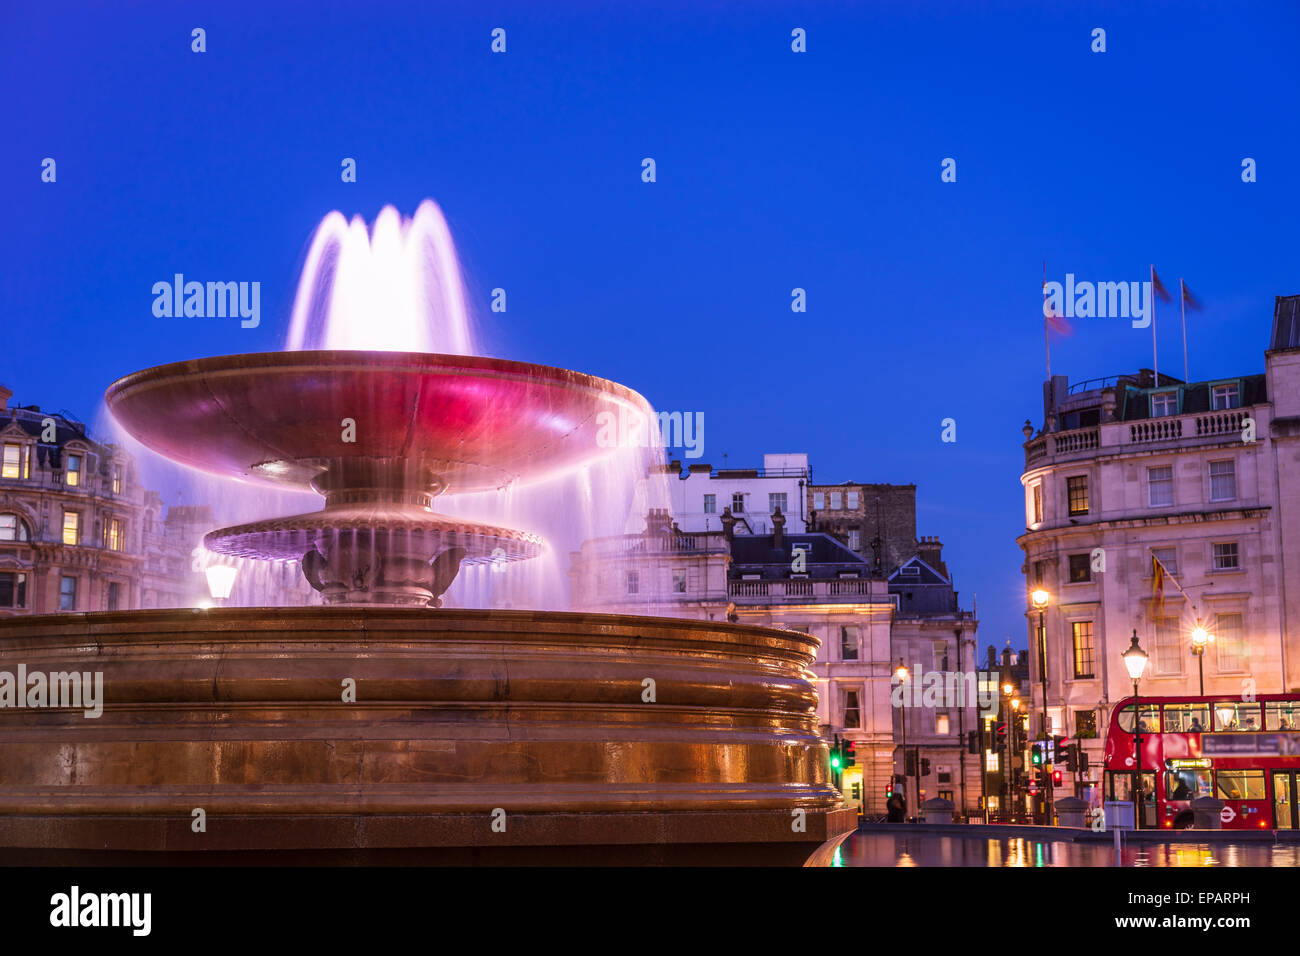 A fountain in Trafalgar square, London, taken in Spring. - Stock Image